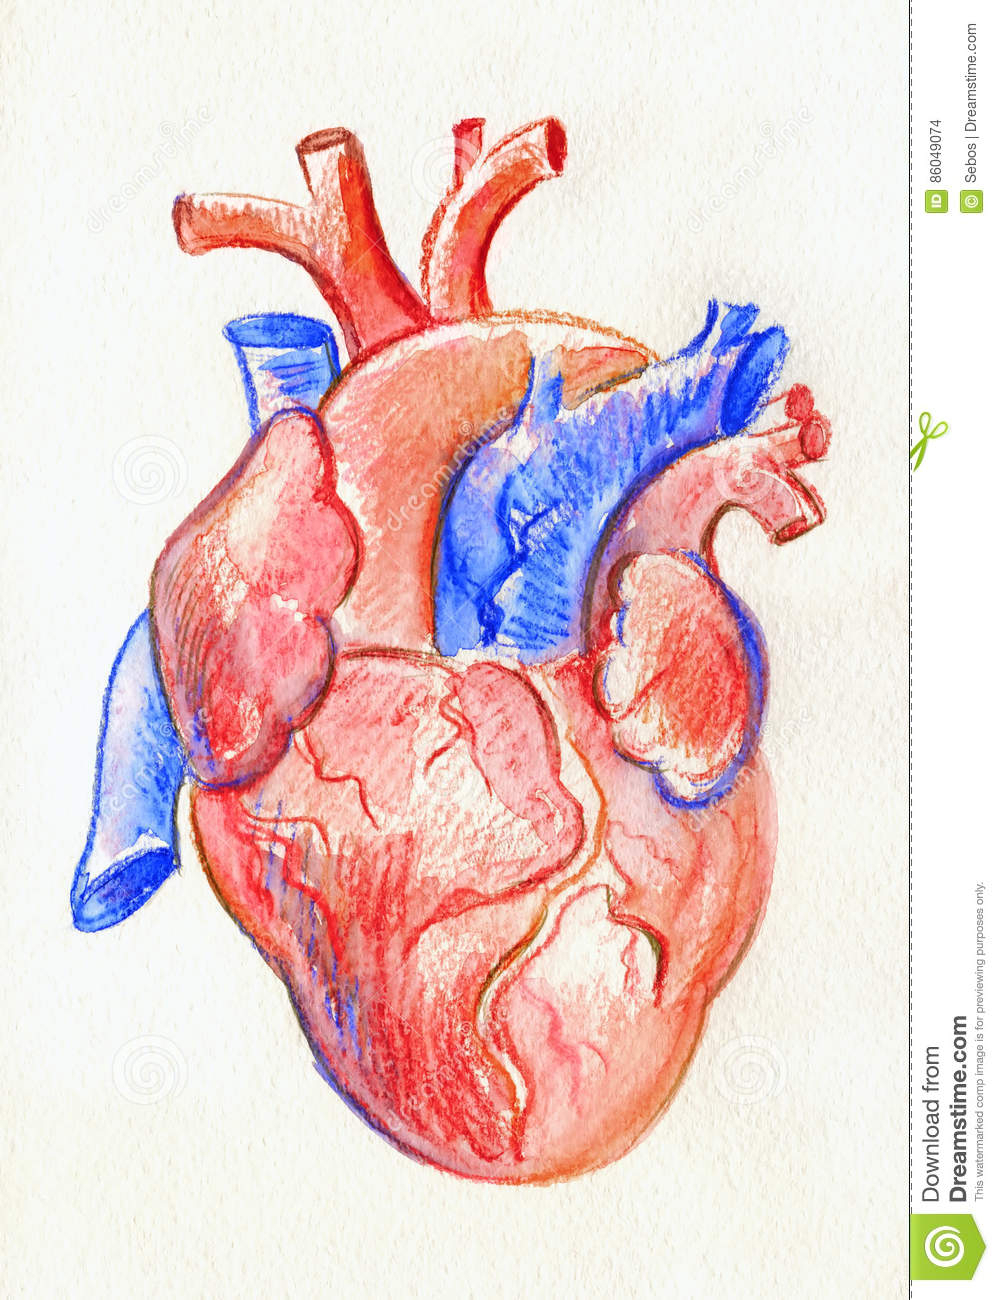 999x1300 Human Heart Sketch With Label Hand Drawing Sketch Anatomical Heart